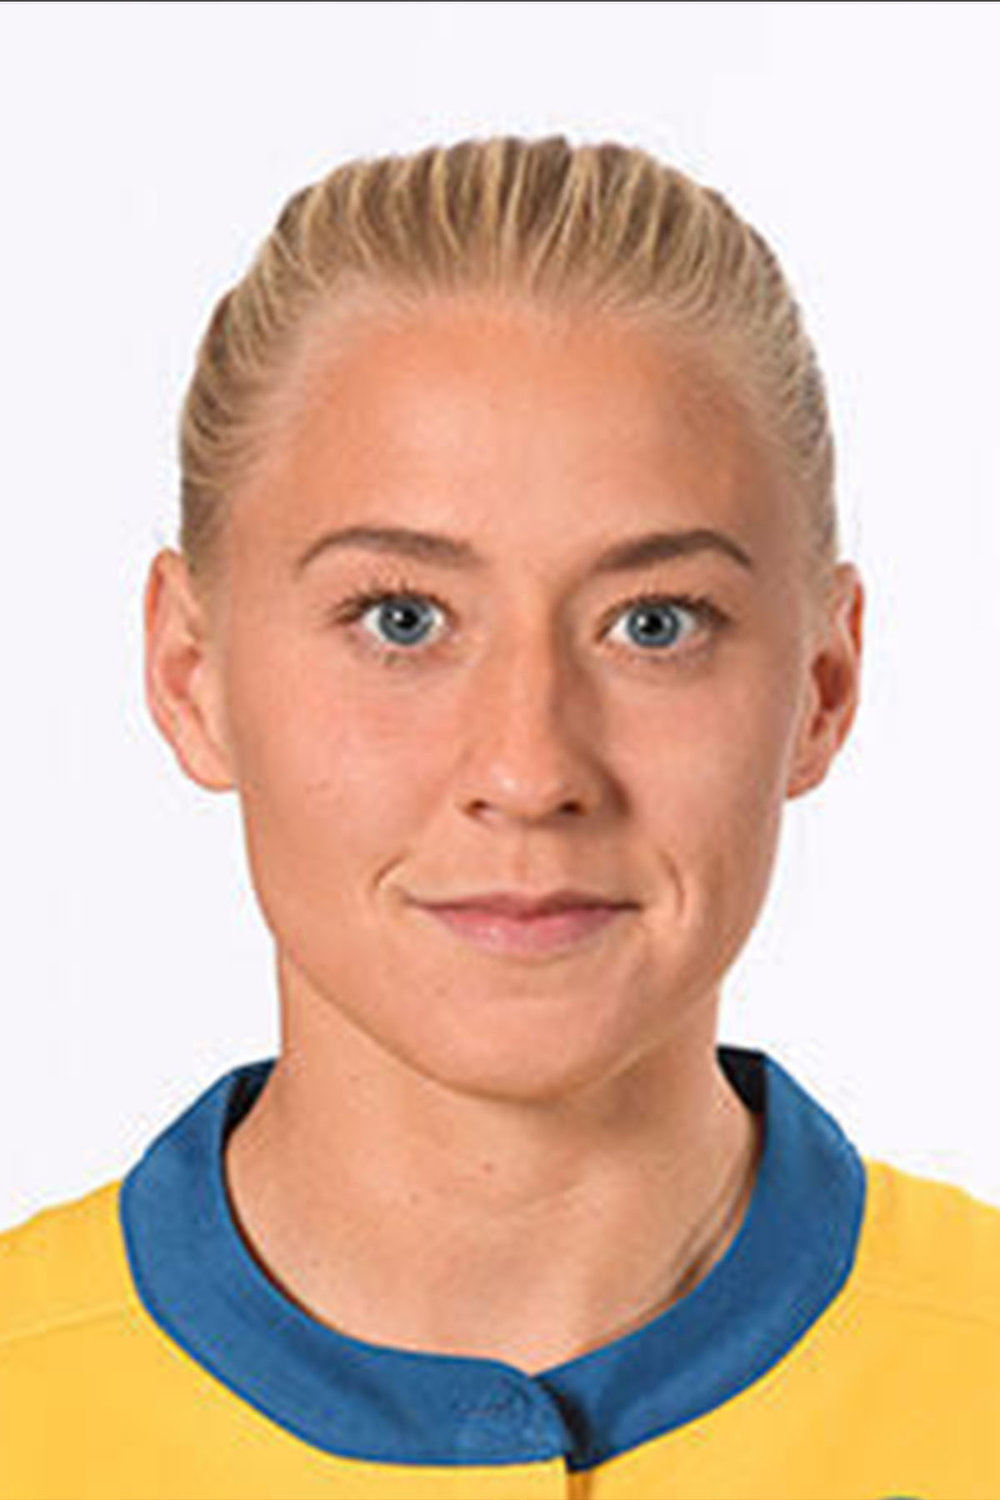 Julia Spetsmark  Swedish International  UEFA Women's EURO 2017  Manchester City WFC 2018  Djurgården IF 2018